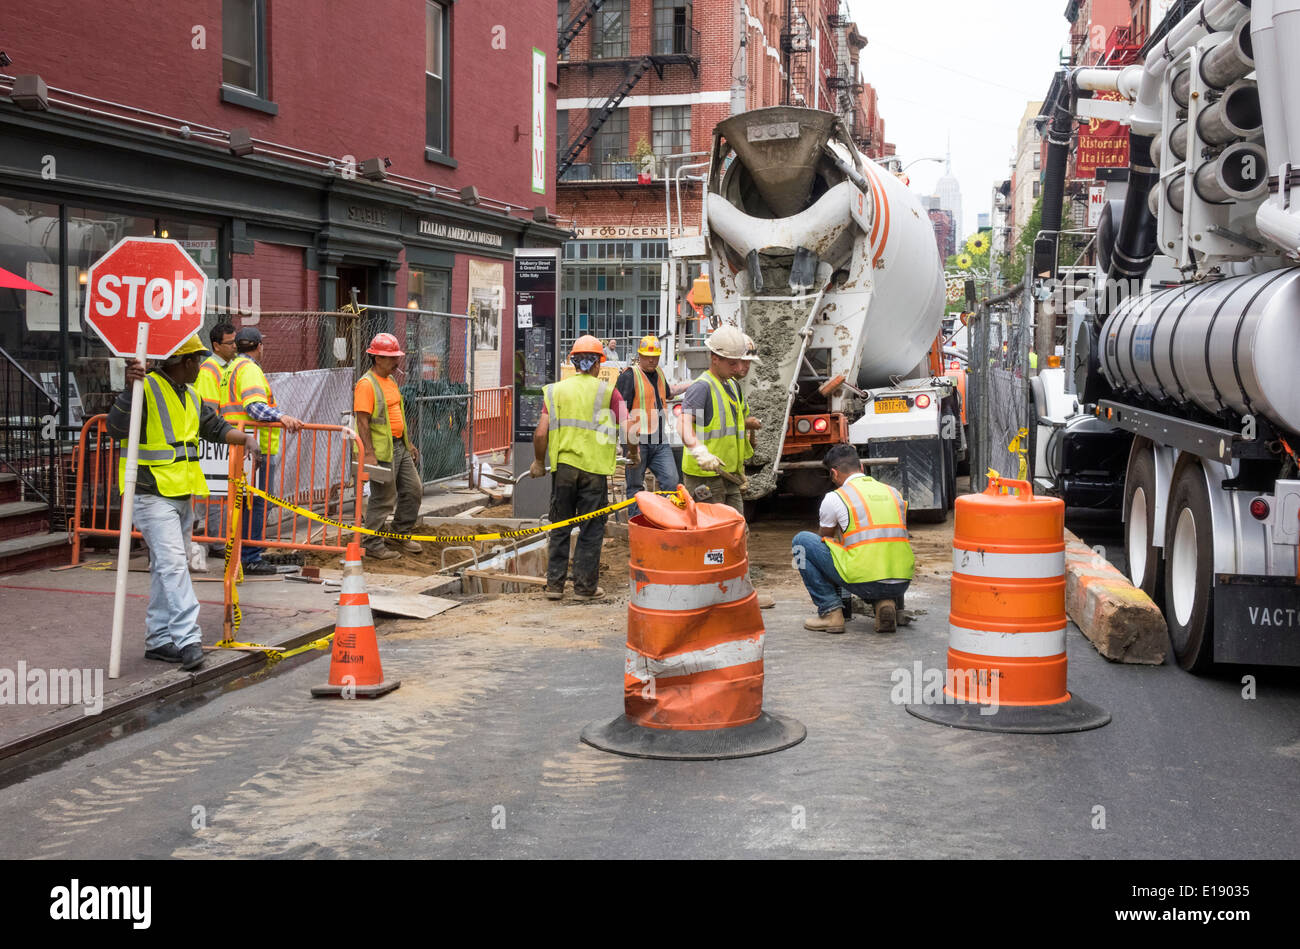 Construction workers replacing the infrastructure in Little Italy in New York City - Stock Image